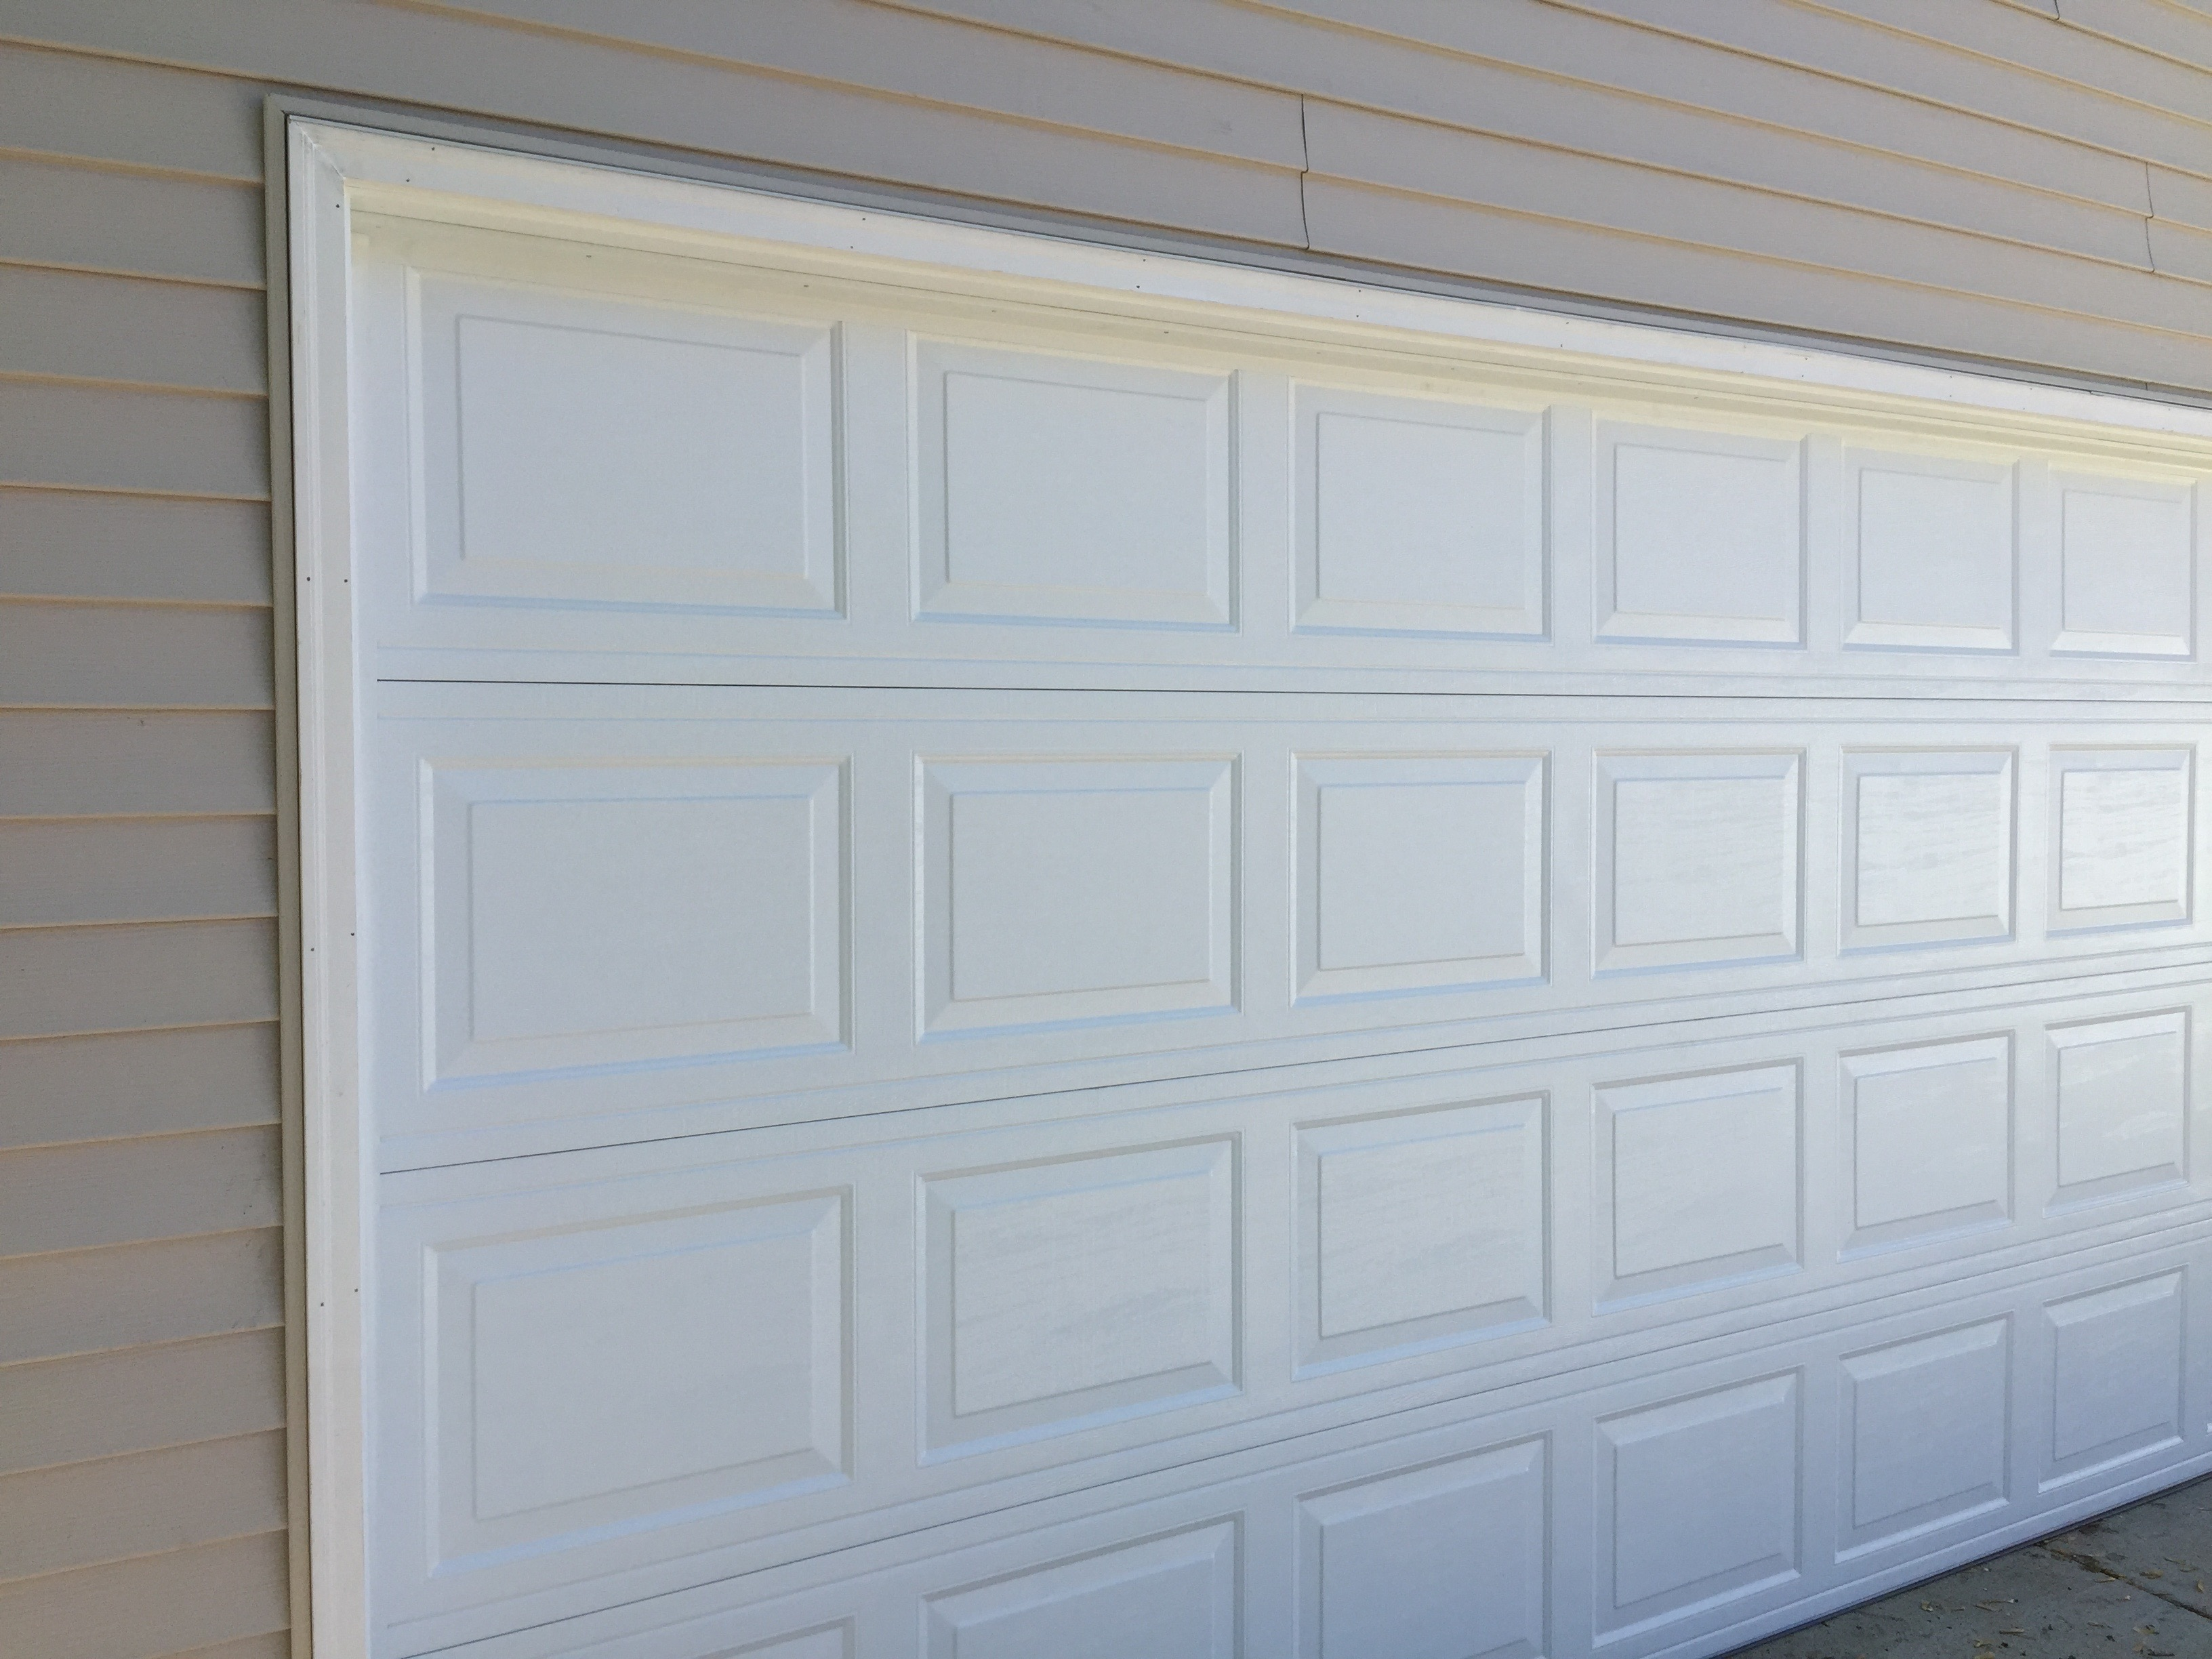 Minnesota Garage Doors.  North_Central_Garage_Doors_Timberland_Classic_Panel_Garage_Door